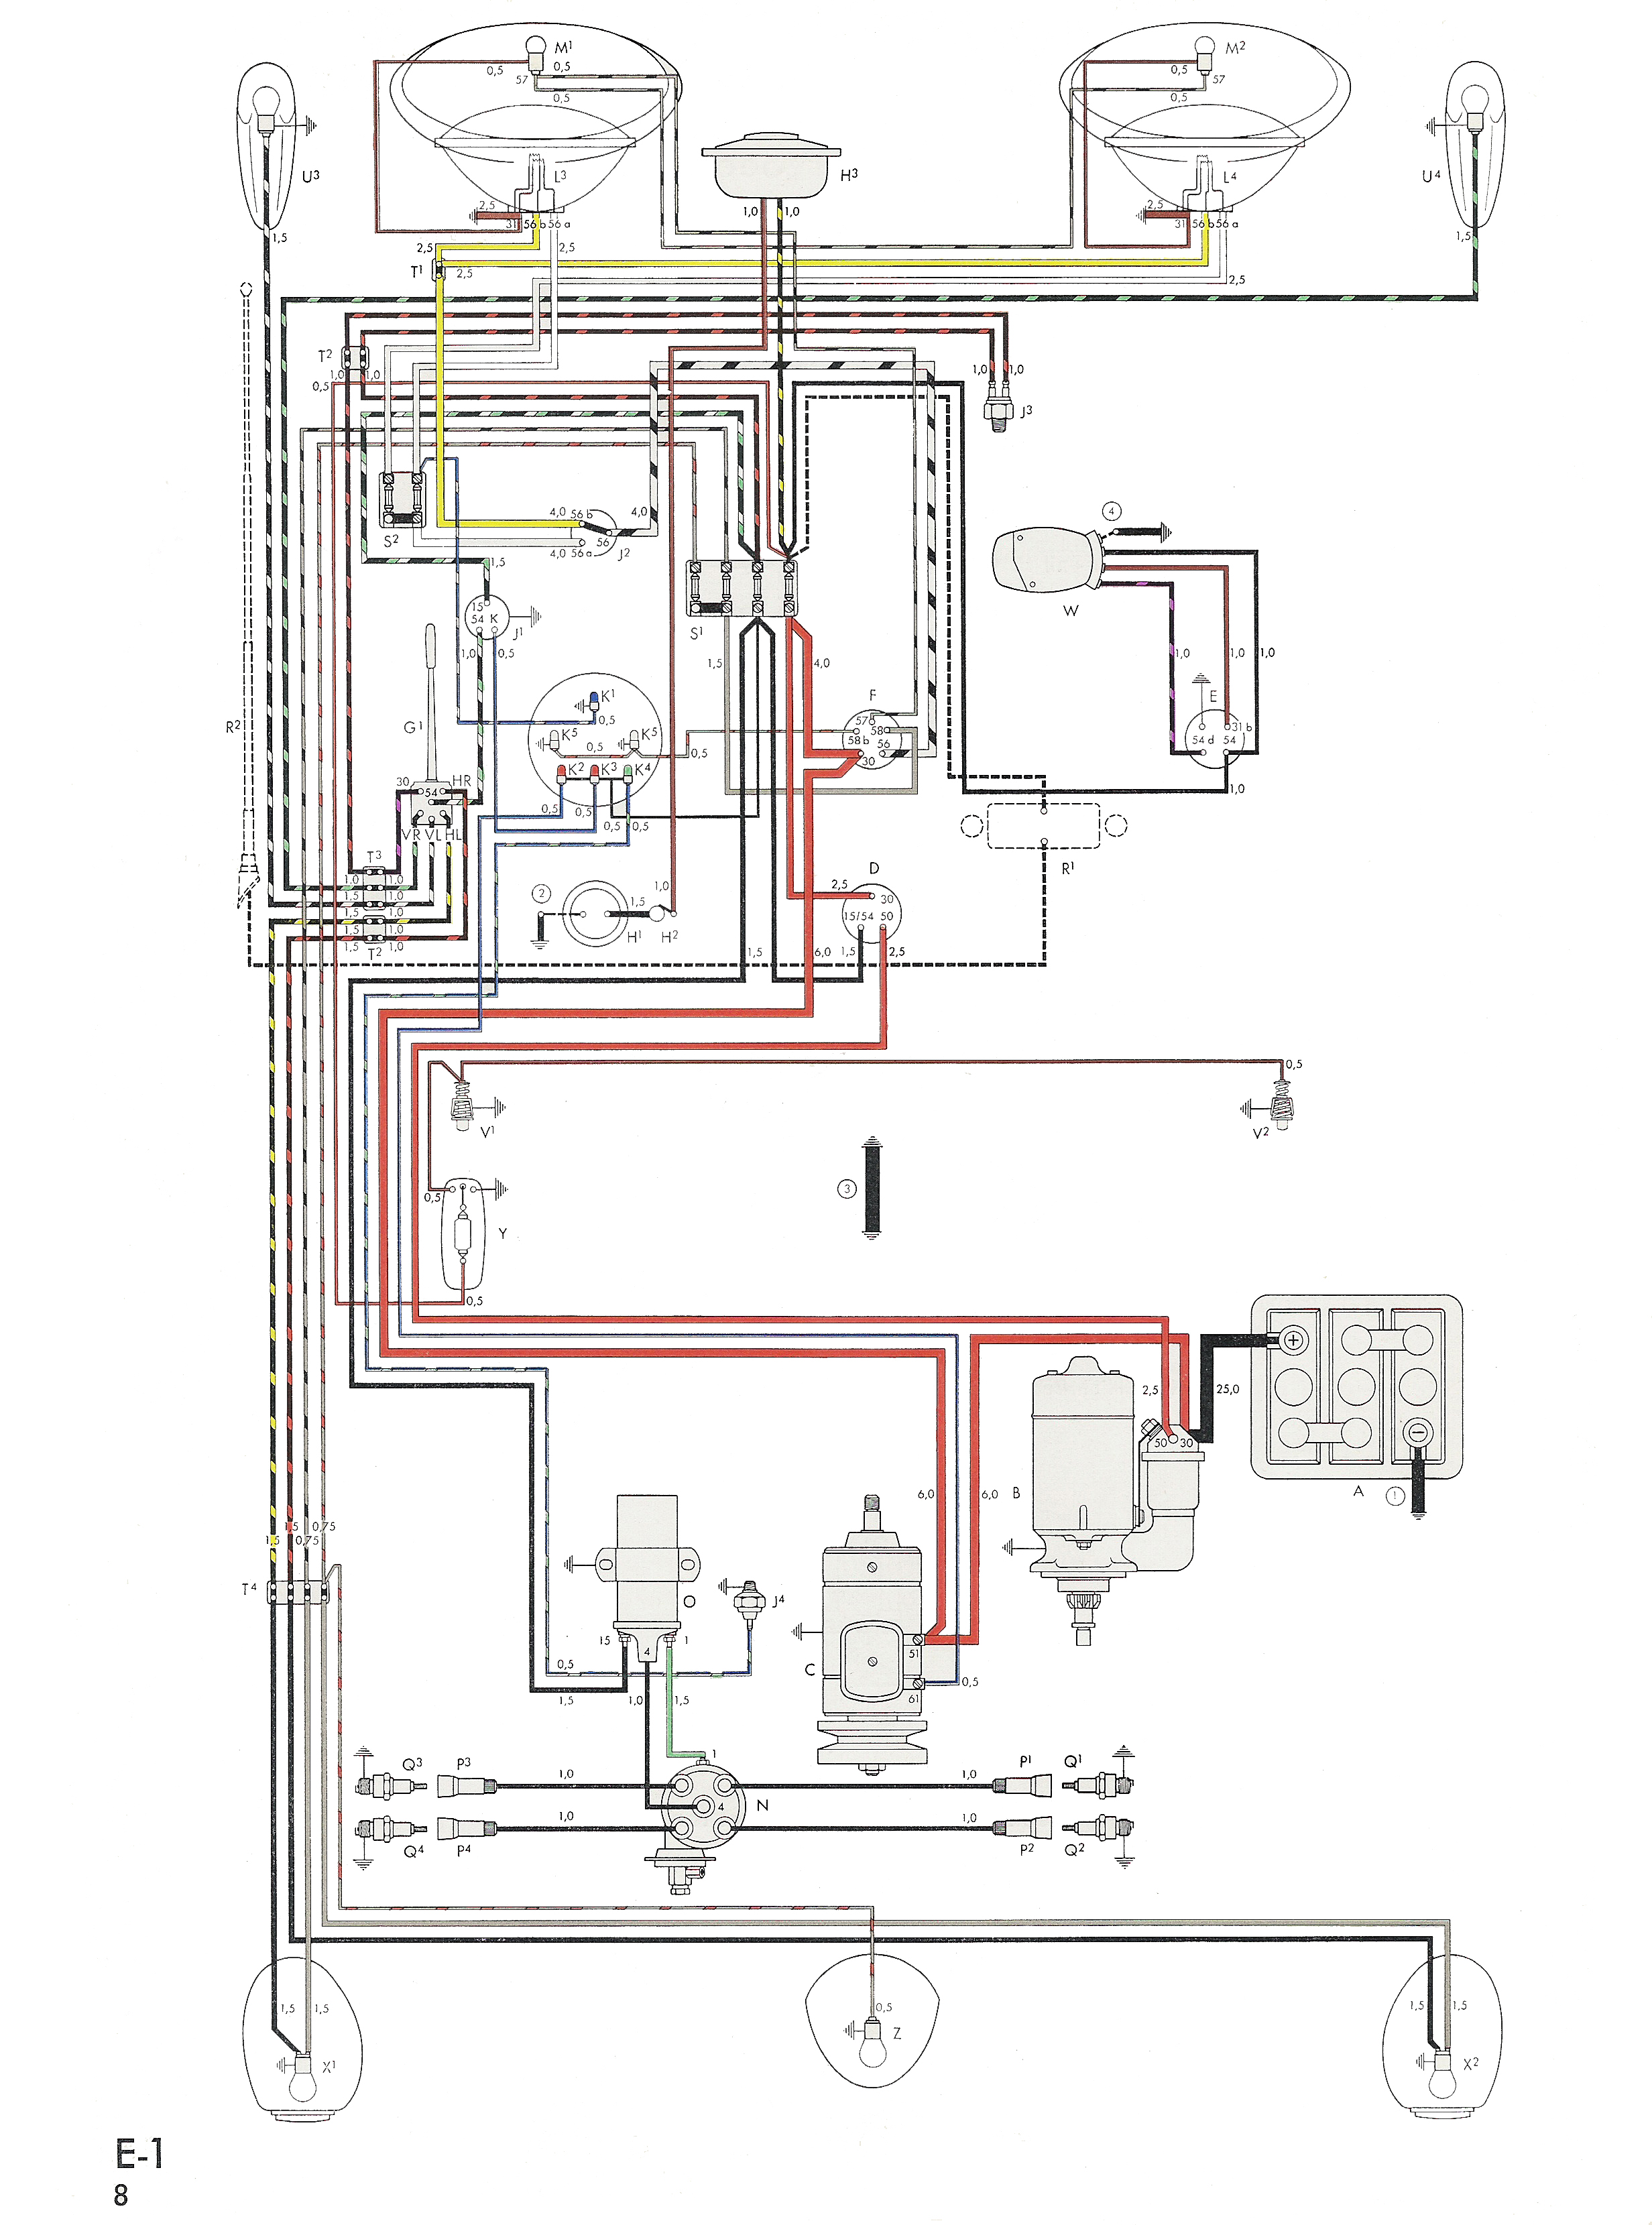 Mercedes Benz Relay Diagram House Wiring Symbols Mb C300 Thesamba Com Type 1 Diagrams Suspension